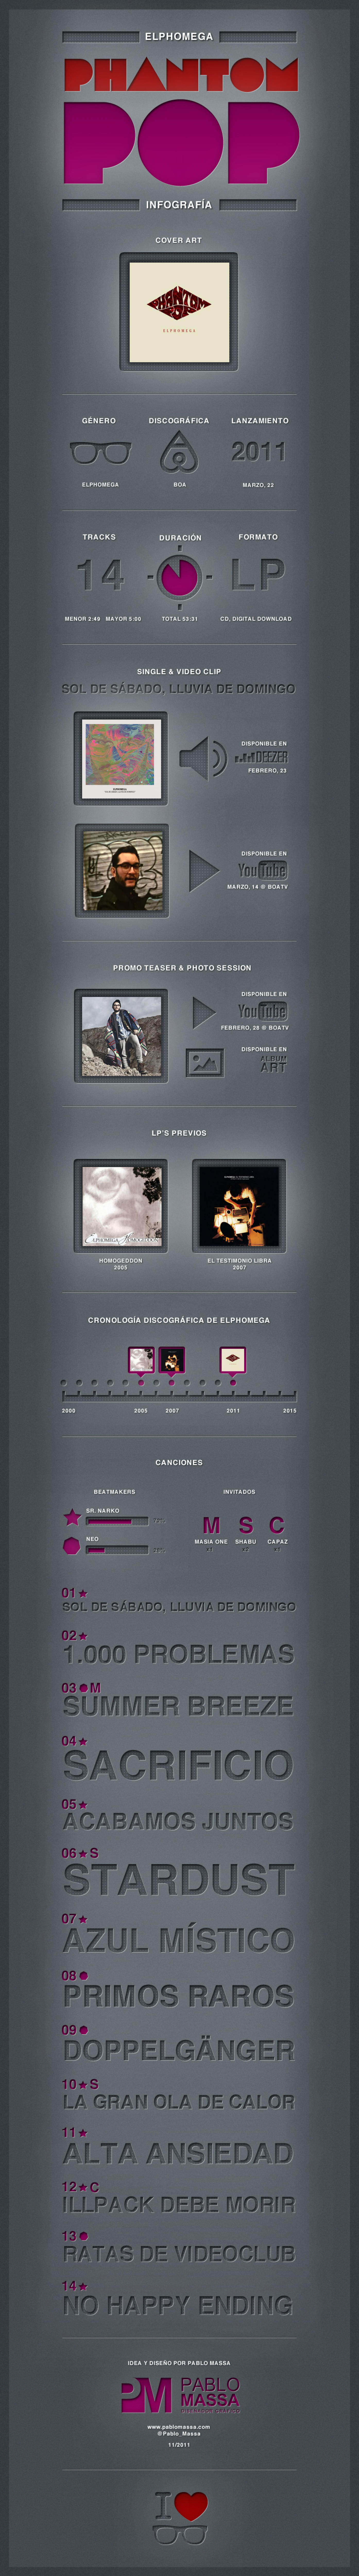 Elphomega's Phantom Pop Infographic